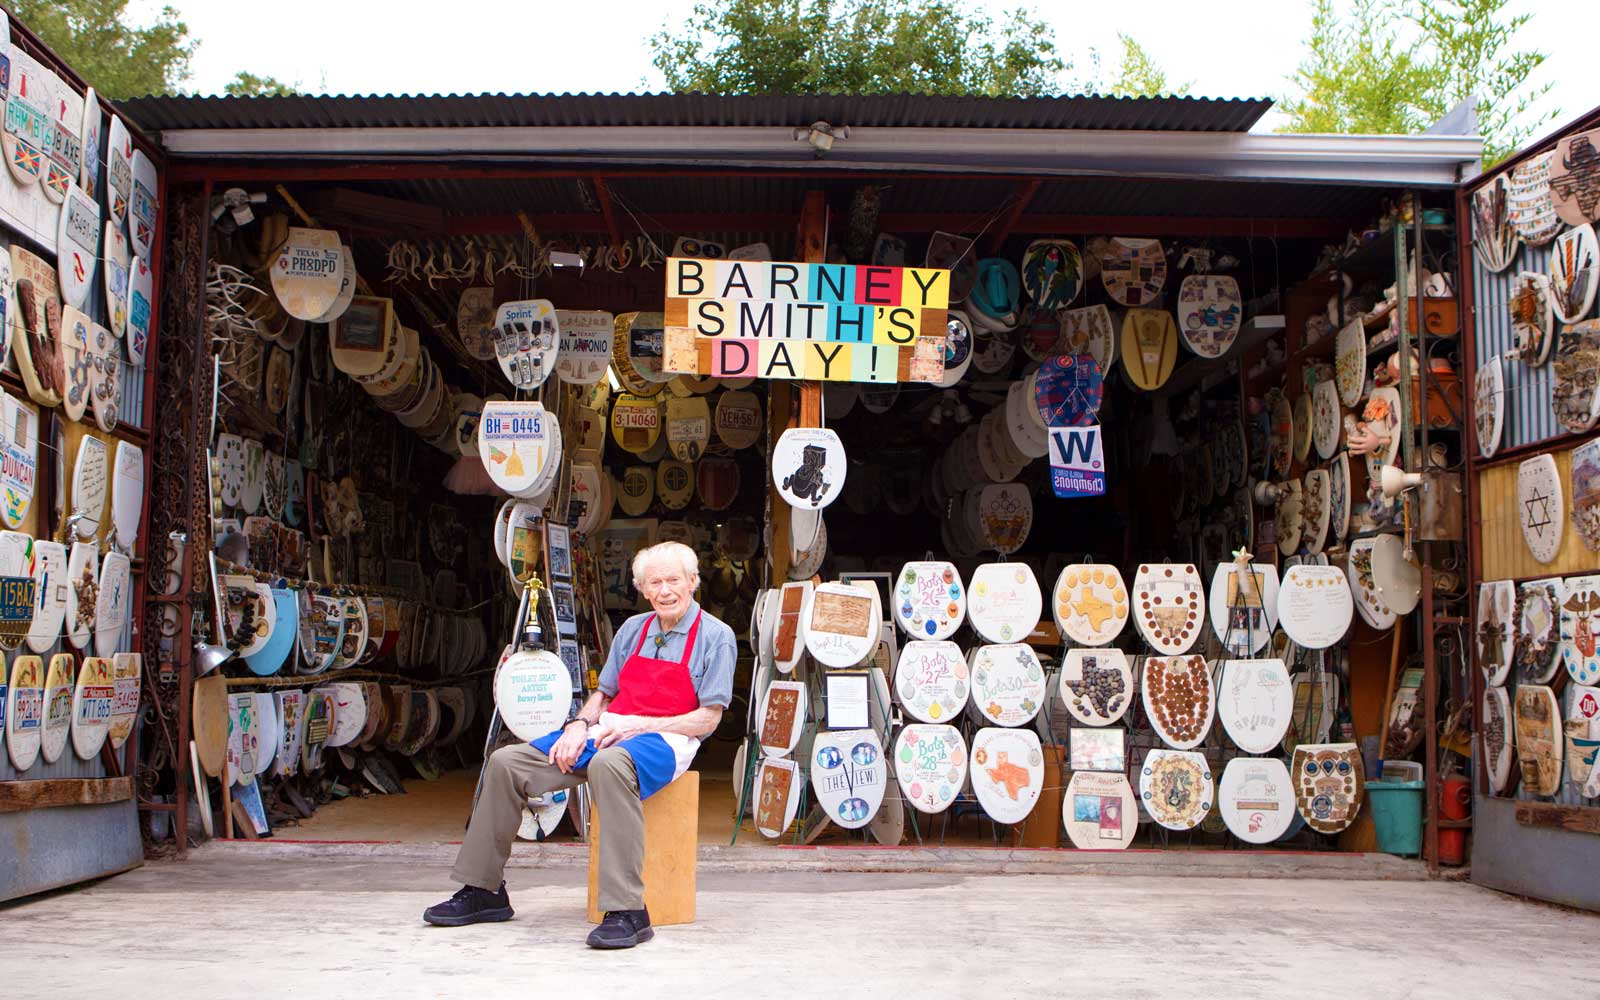 At 96 Years Old, Barney Smith Is Putting His Toilet Seat Art Museum Up For Sale